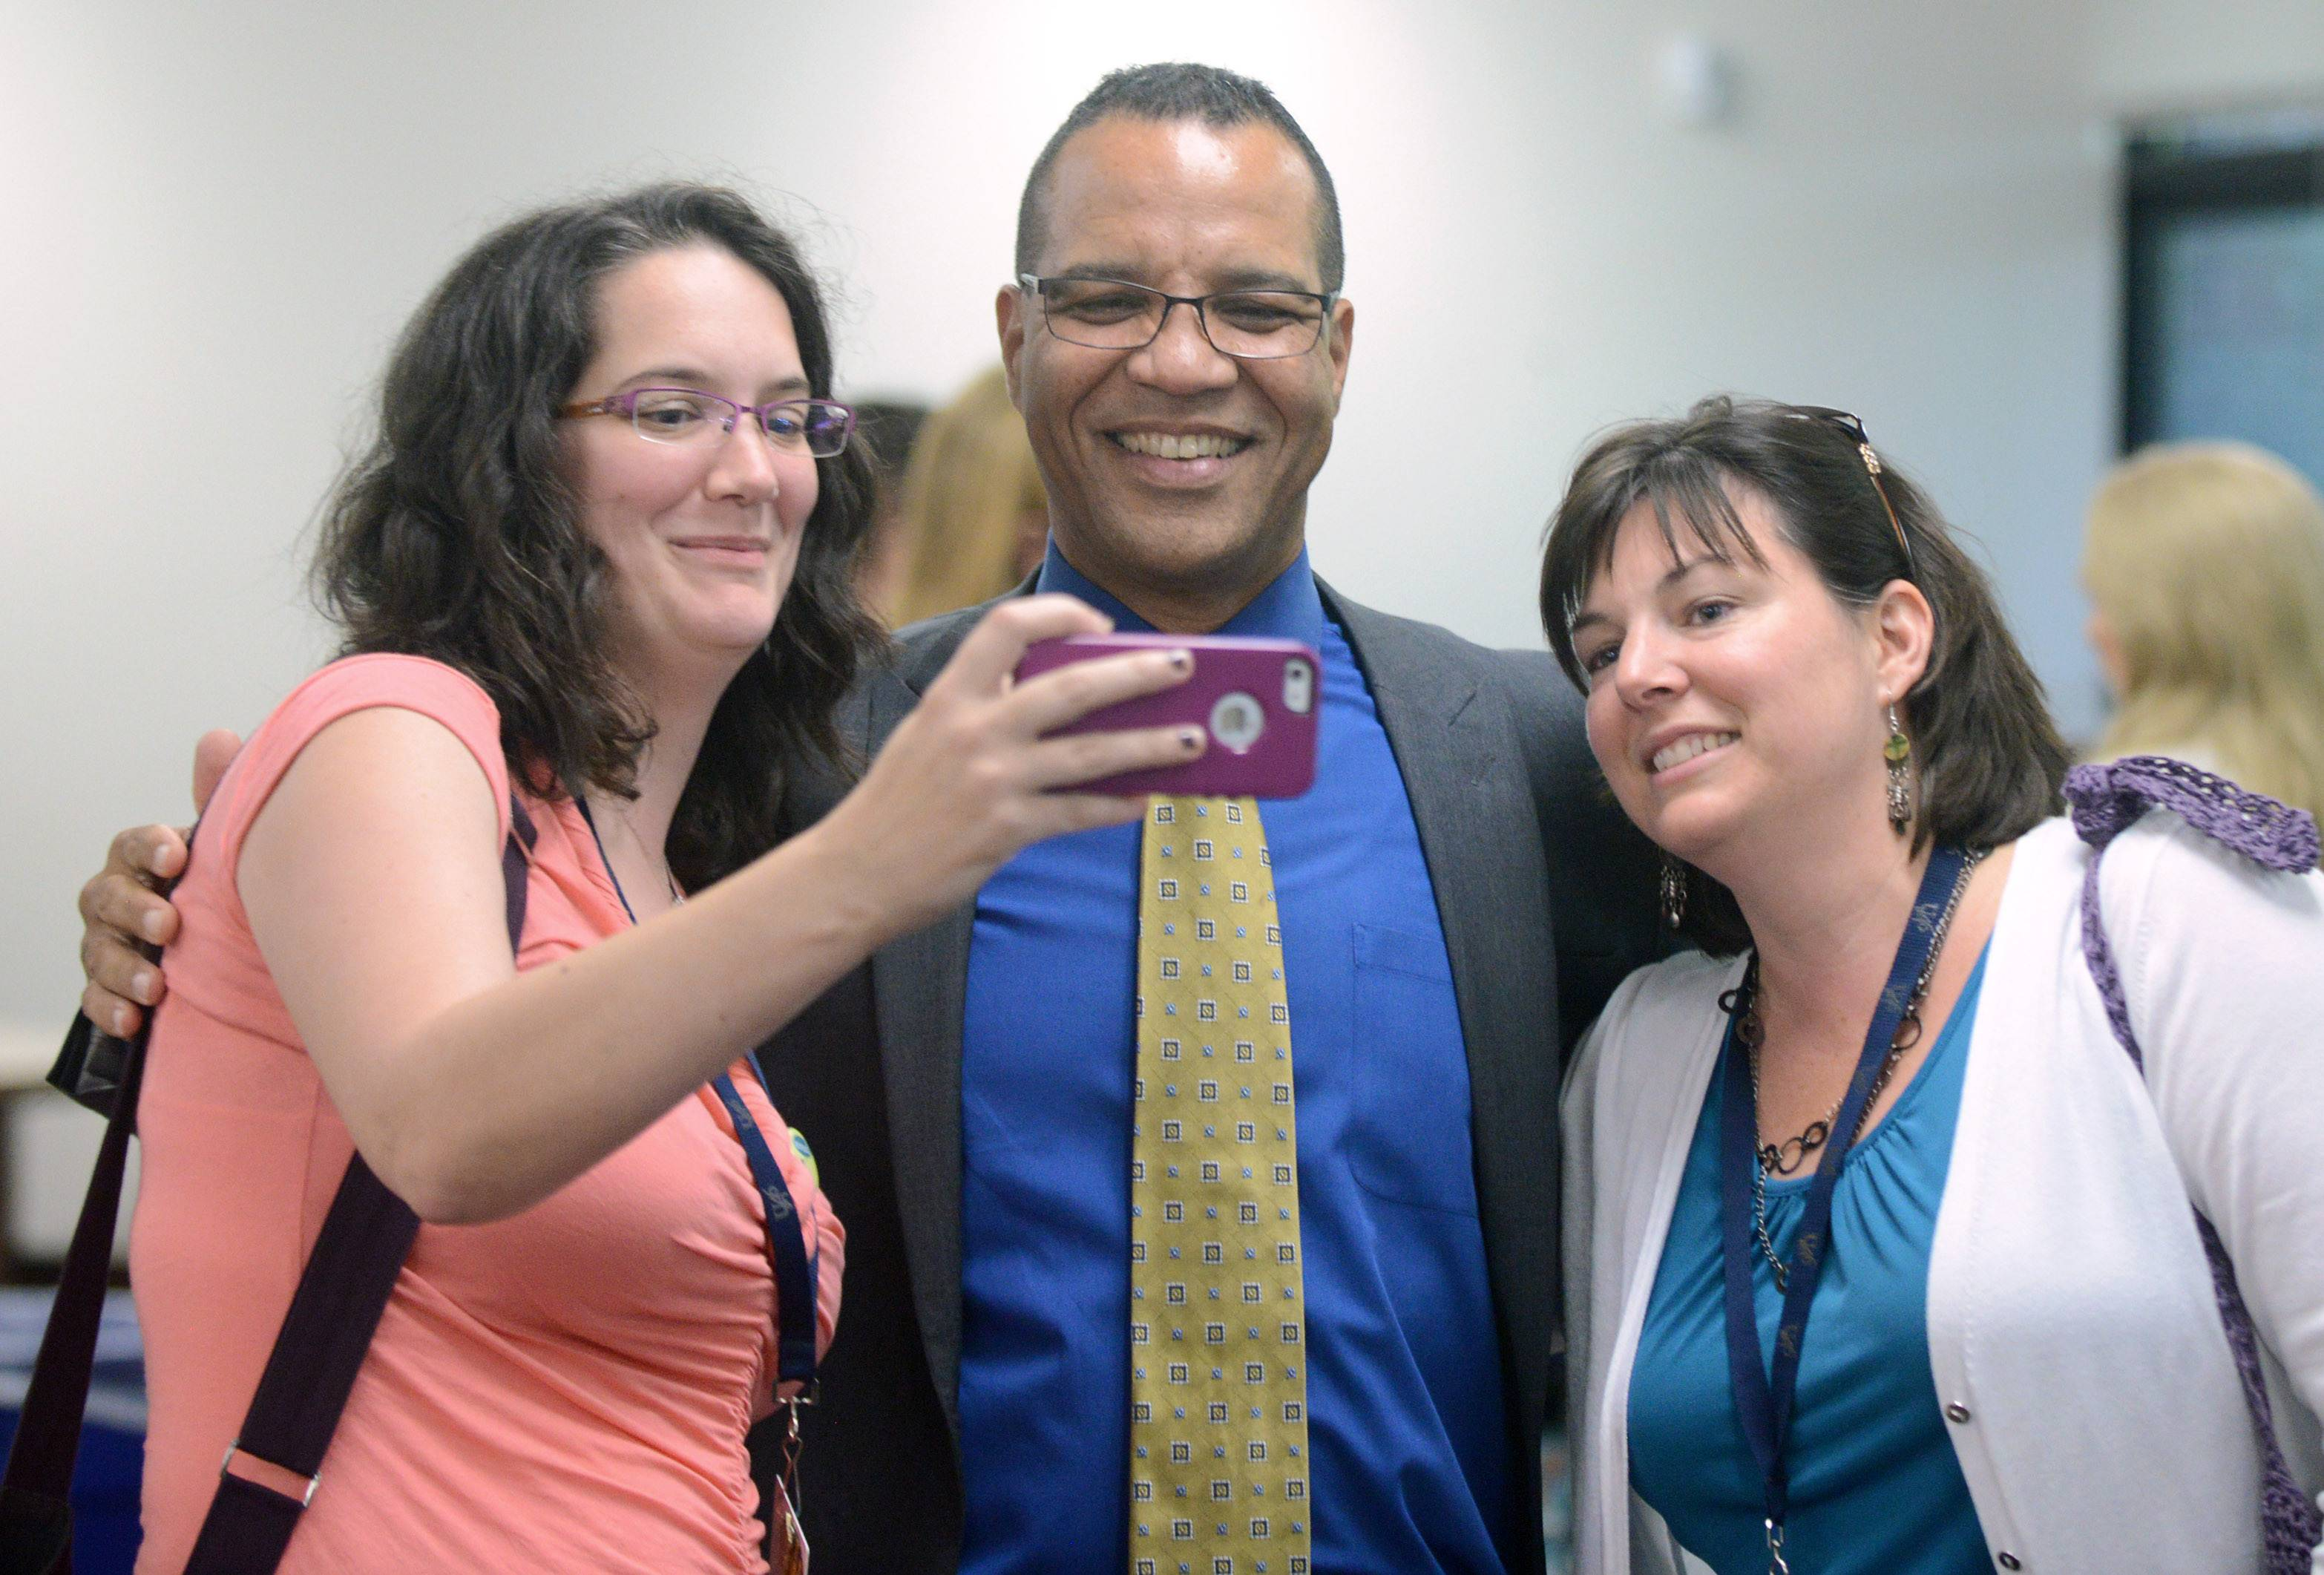 Transformation coaches Erin Jackle, left, and Angie Gallegos take a 'selfie' Friday with Elgin Area School District U-46 Superintendent Jose Torres at his farewell reception at the Elgin High School library.